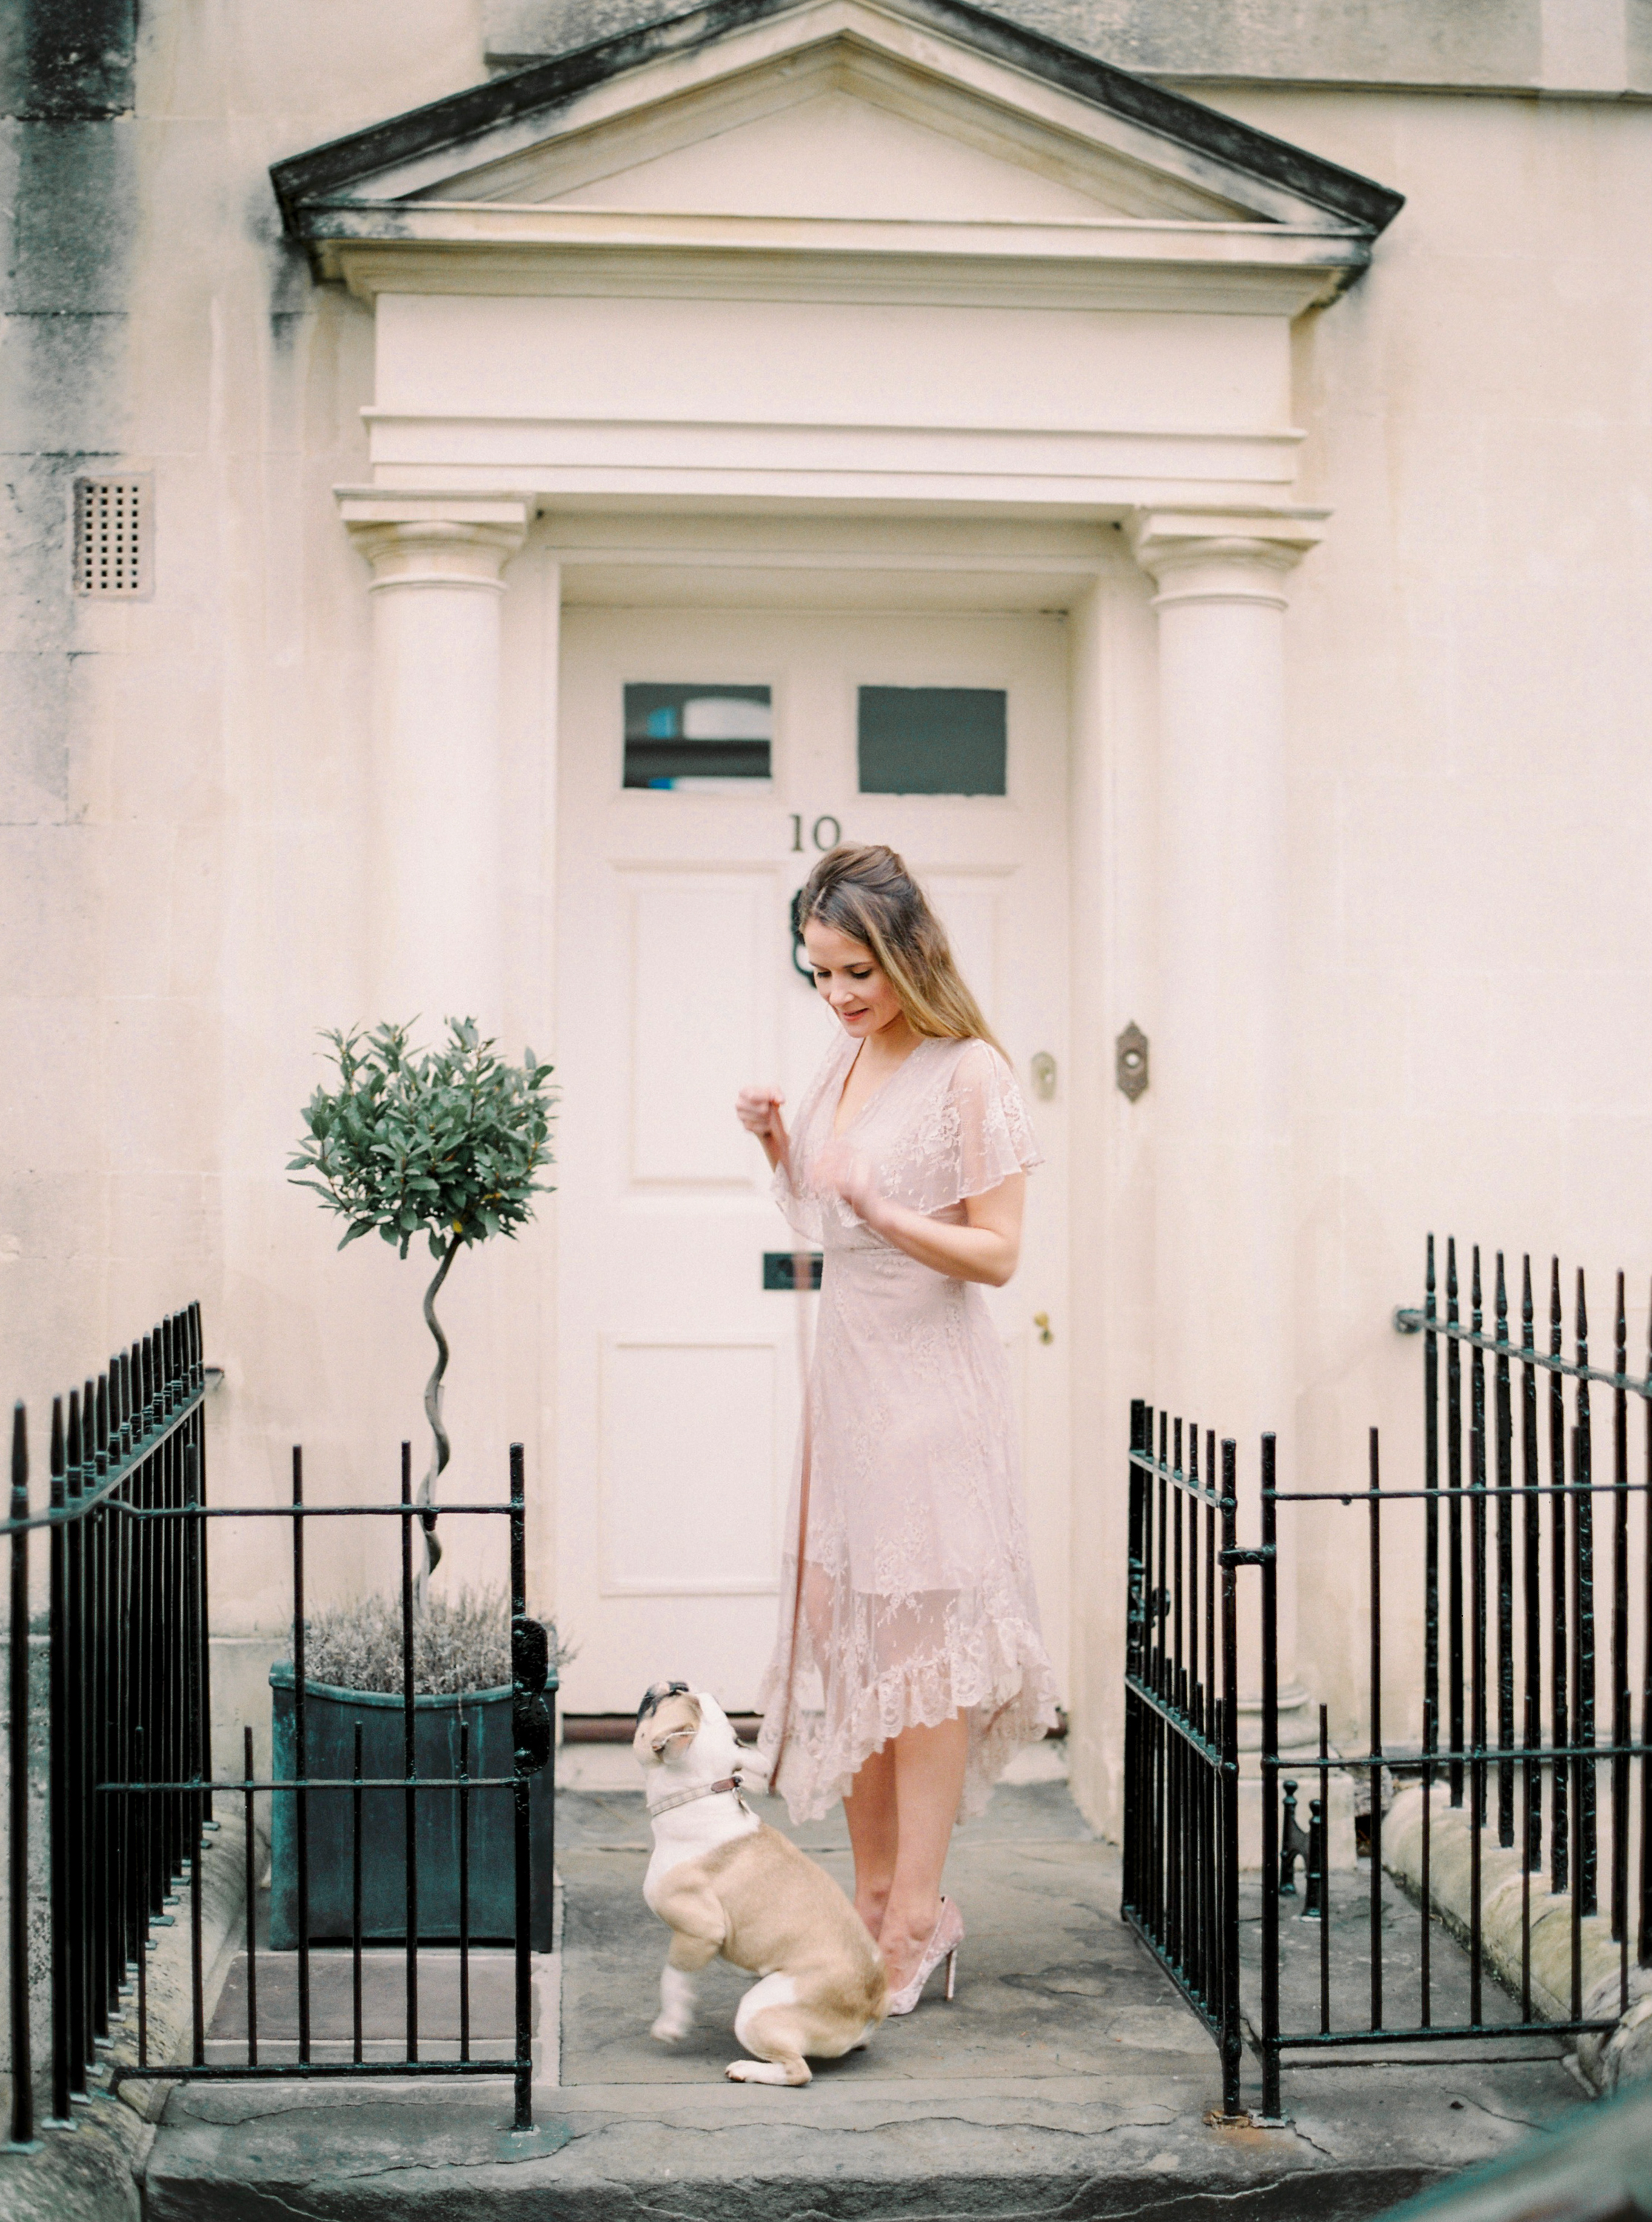 Lily & Sage   Luxury Wedding Planner UK   Our Chic & Romantic Engagement Shoot in Bath Pastel   Katie Julia Photography - 027.JPG